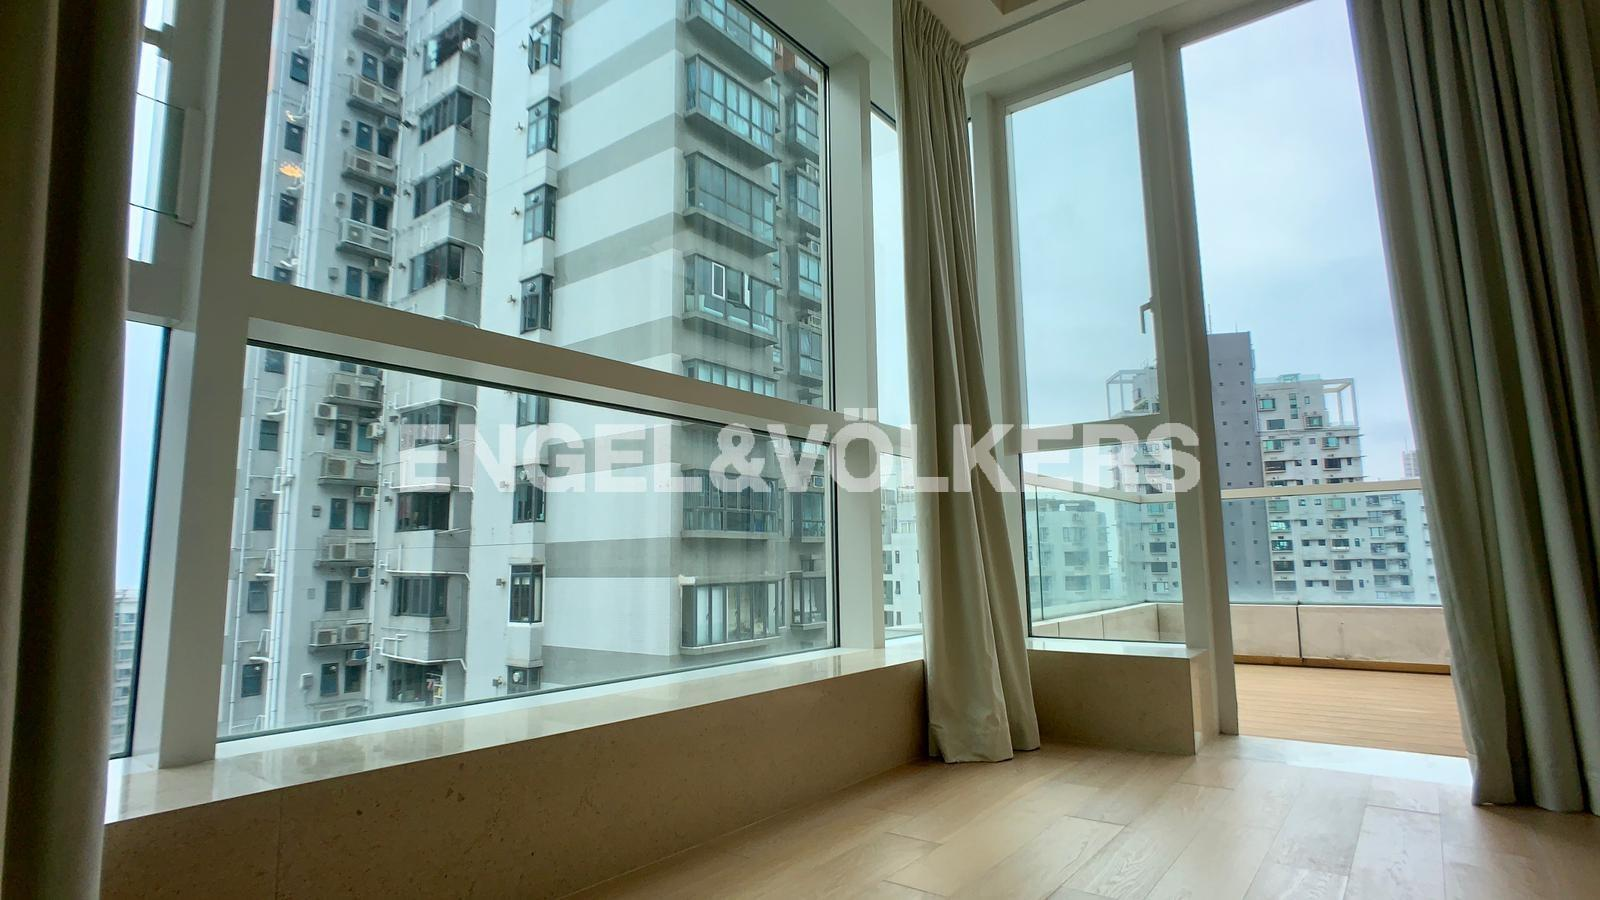 Apartment in Mid Level West / Pok Fu Lam - THE MORGAN 敦皓